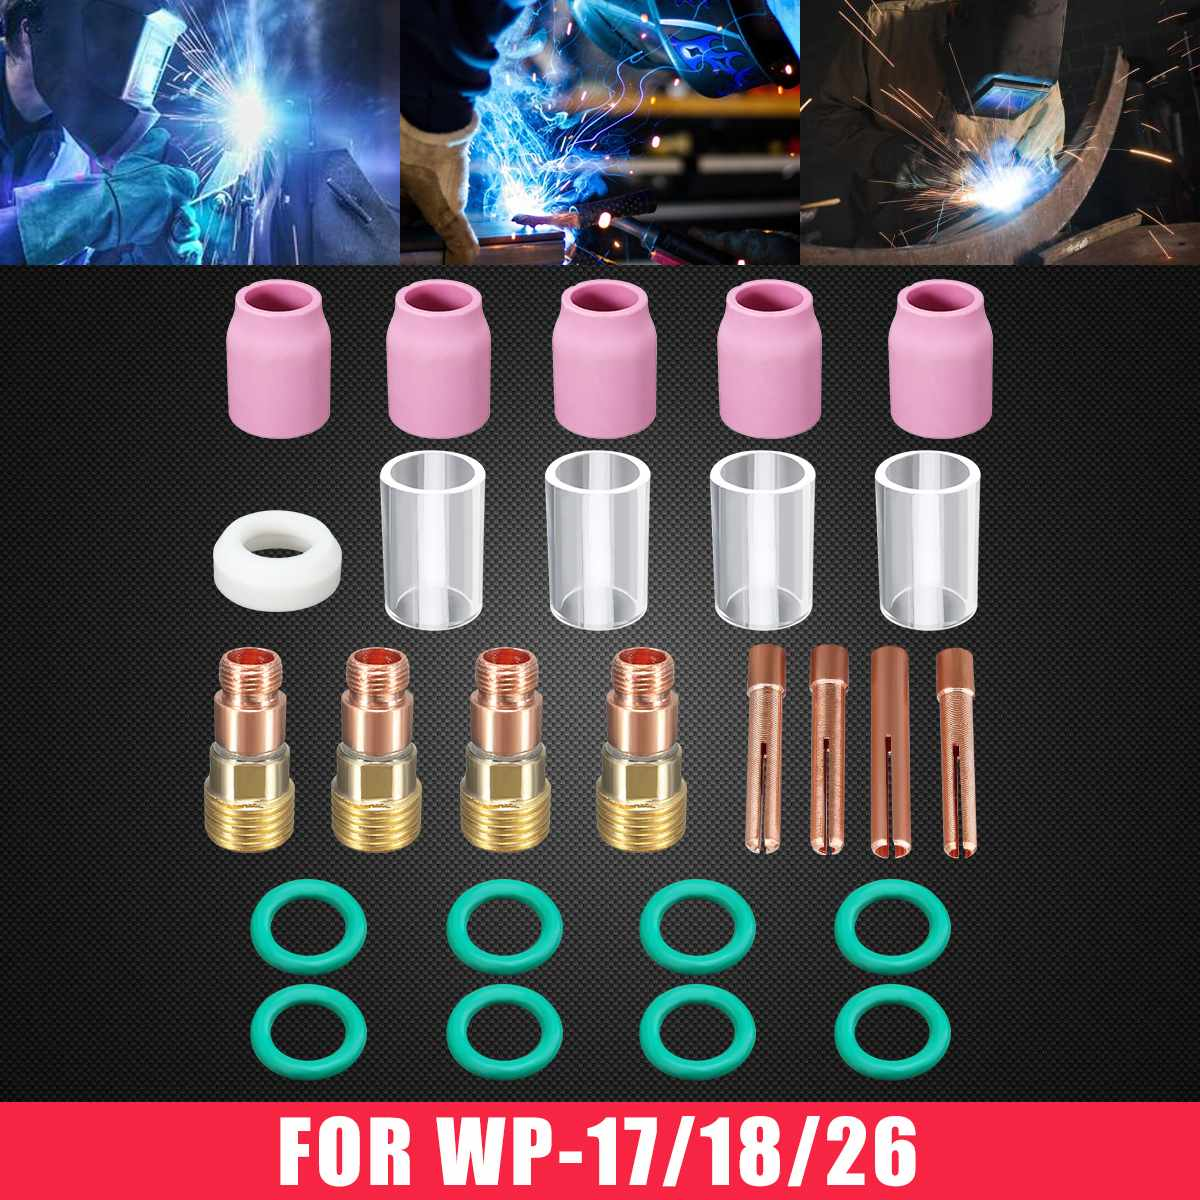 26x TIG Welding Torch Stubby Gas Lens #10 Pyrex Glass Cup Kit For WP-17/18/26 Welder Welding Tools New Arrival 2020